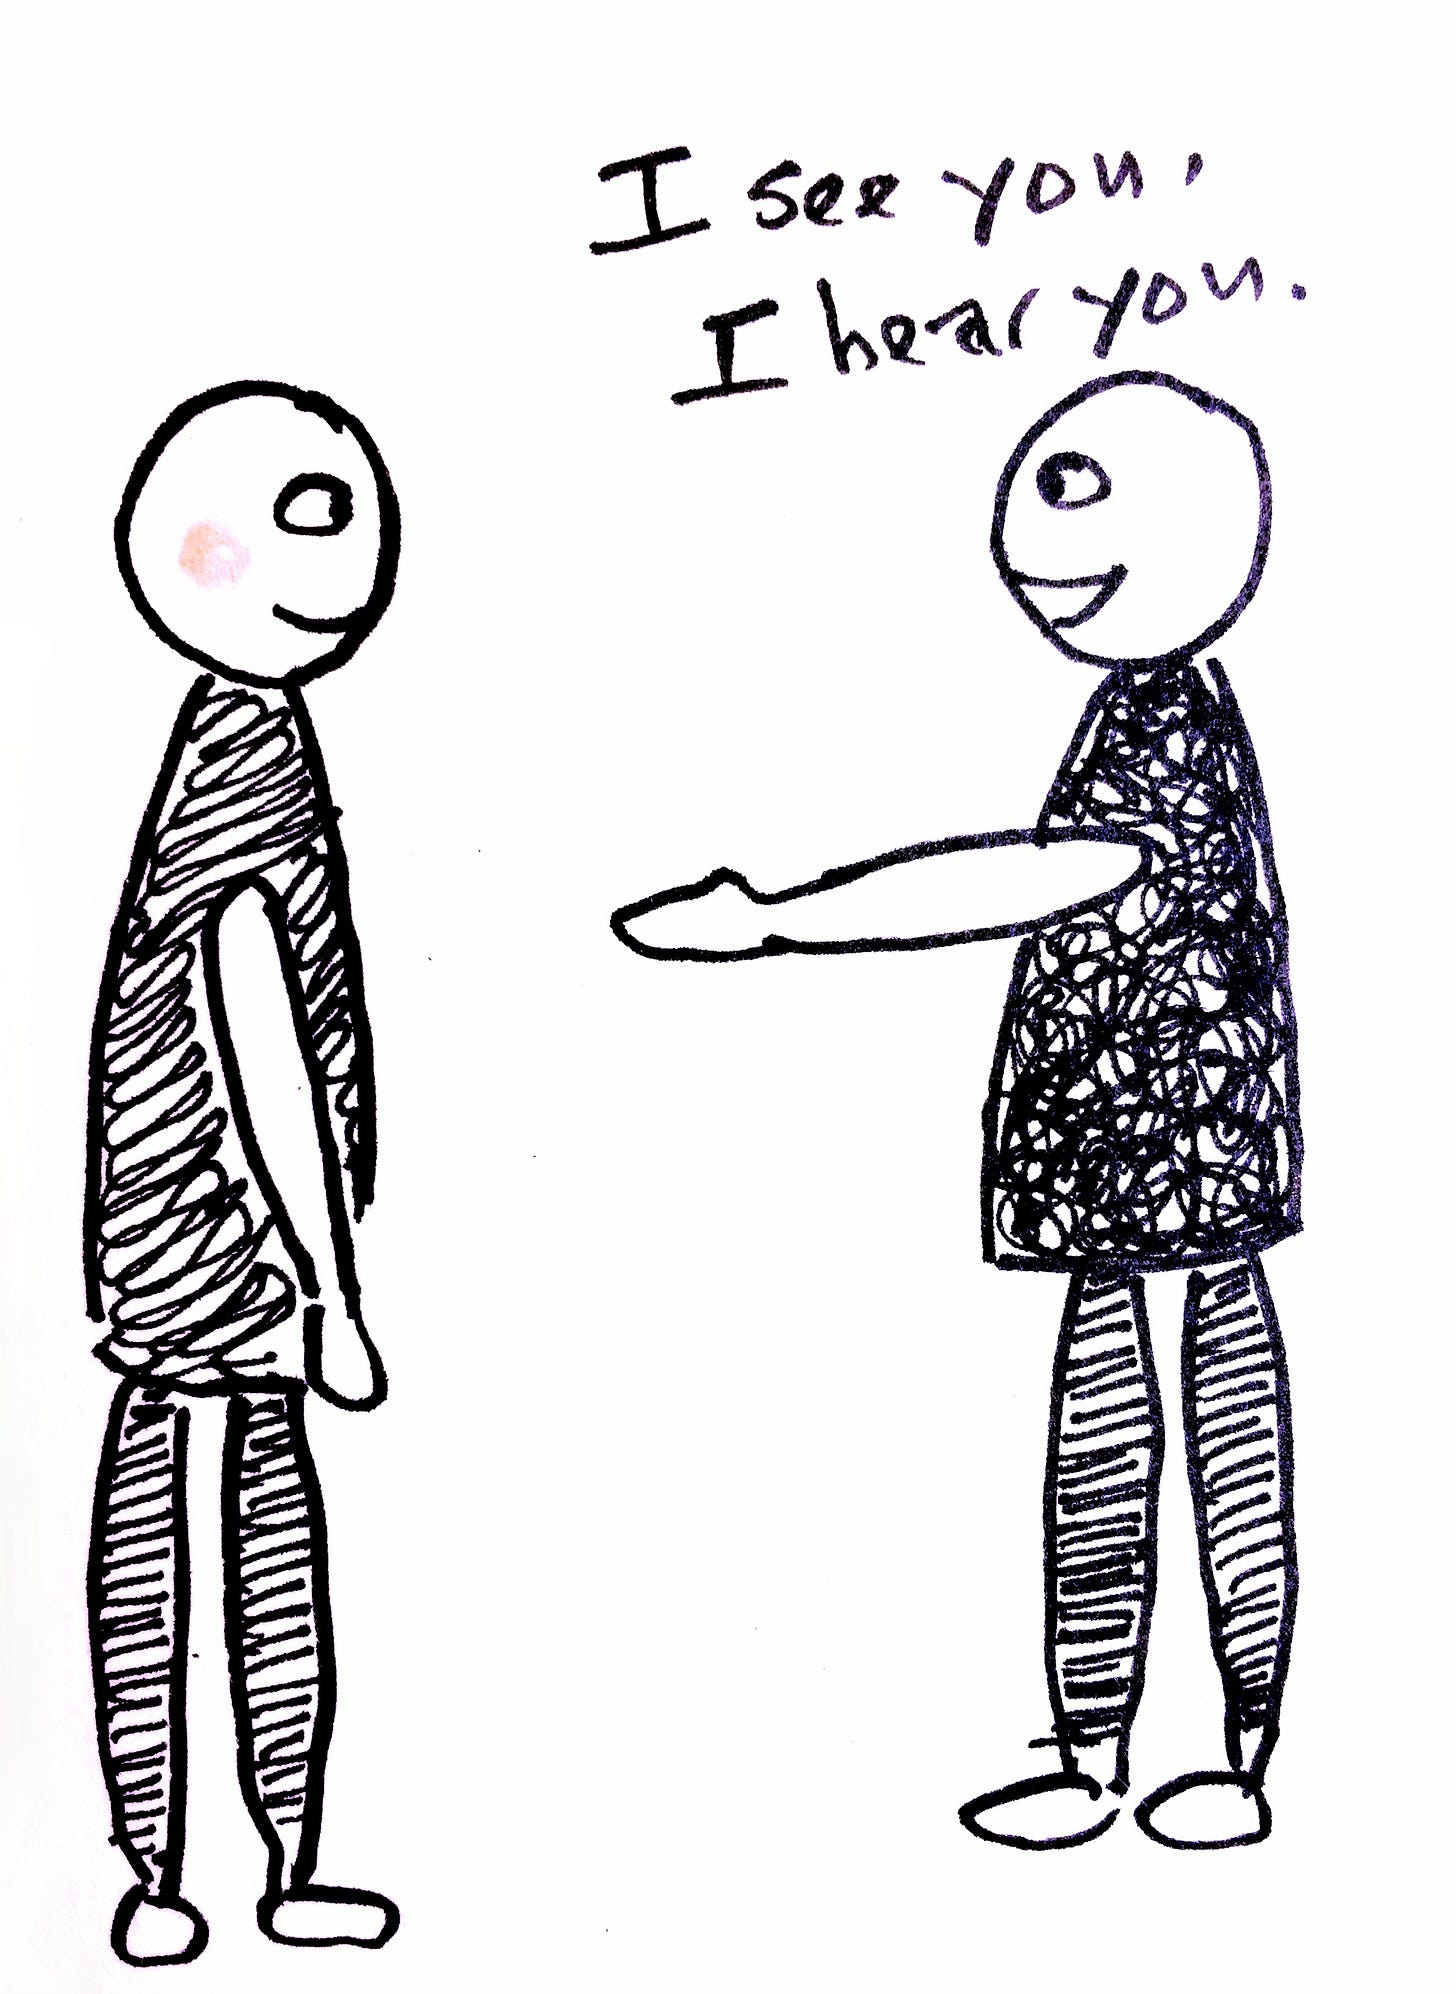 """The 3rd panel shows two people facing each other. On the left was one of the faces, on the right was the person who said """"I see you"""", and he's extending his hand out to the other person."""